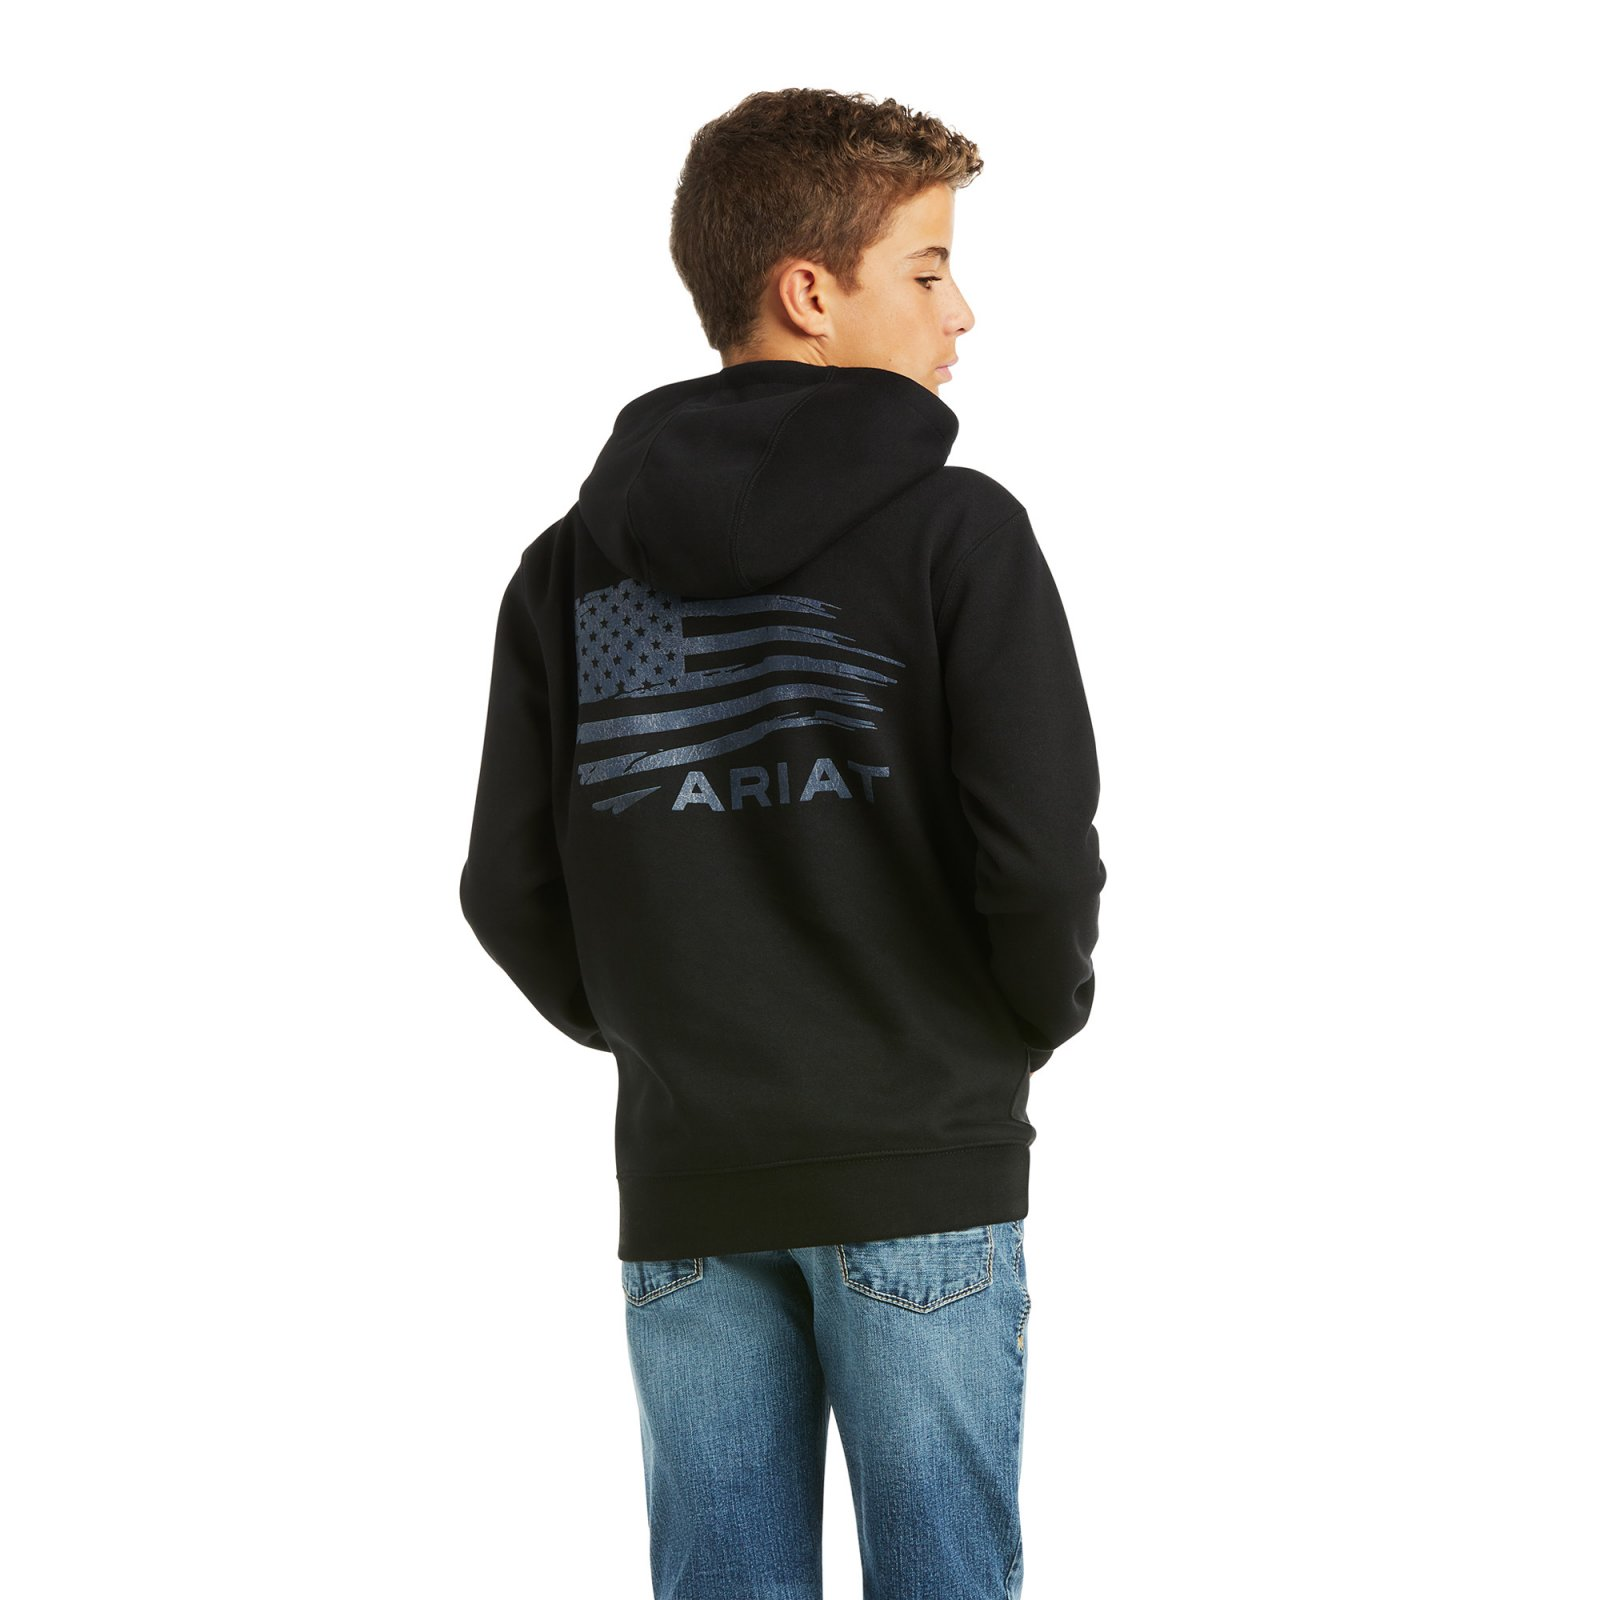 Youth Patriot 2.0 Sweatshirt from Ariat